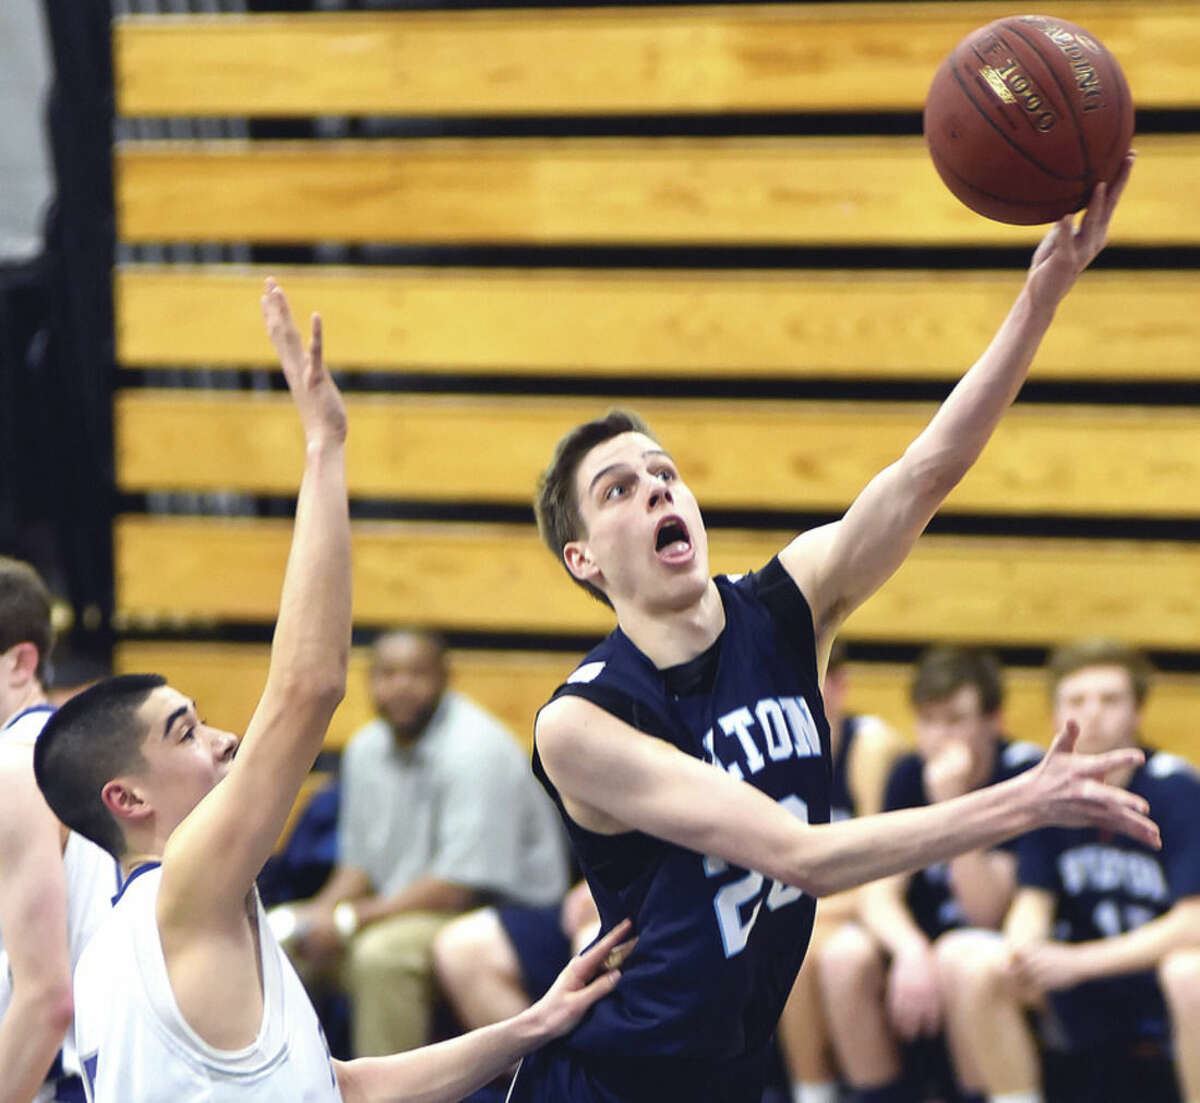 Hour photo/John Nash Wilton's Michael Bingaman, right, powers to the hoop as Fairfield Ludlowe's Matt Doyle defends in the second half of Monday night's game.